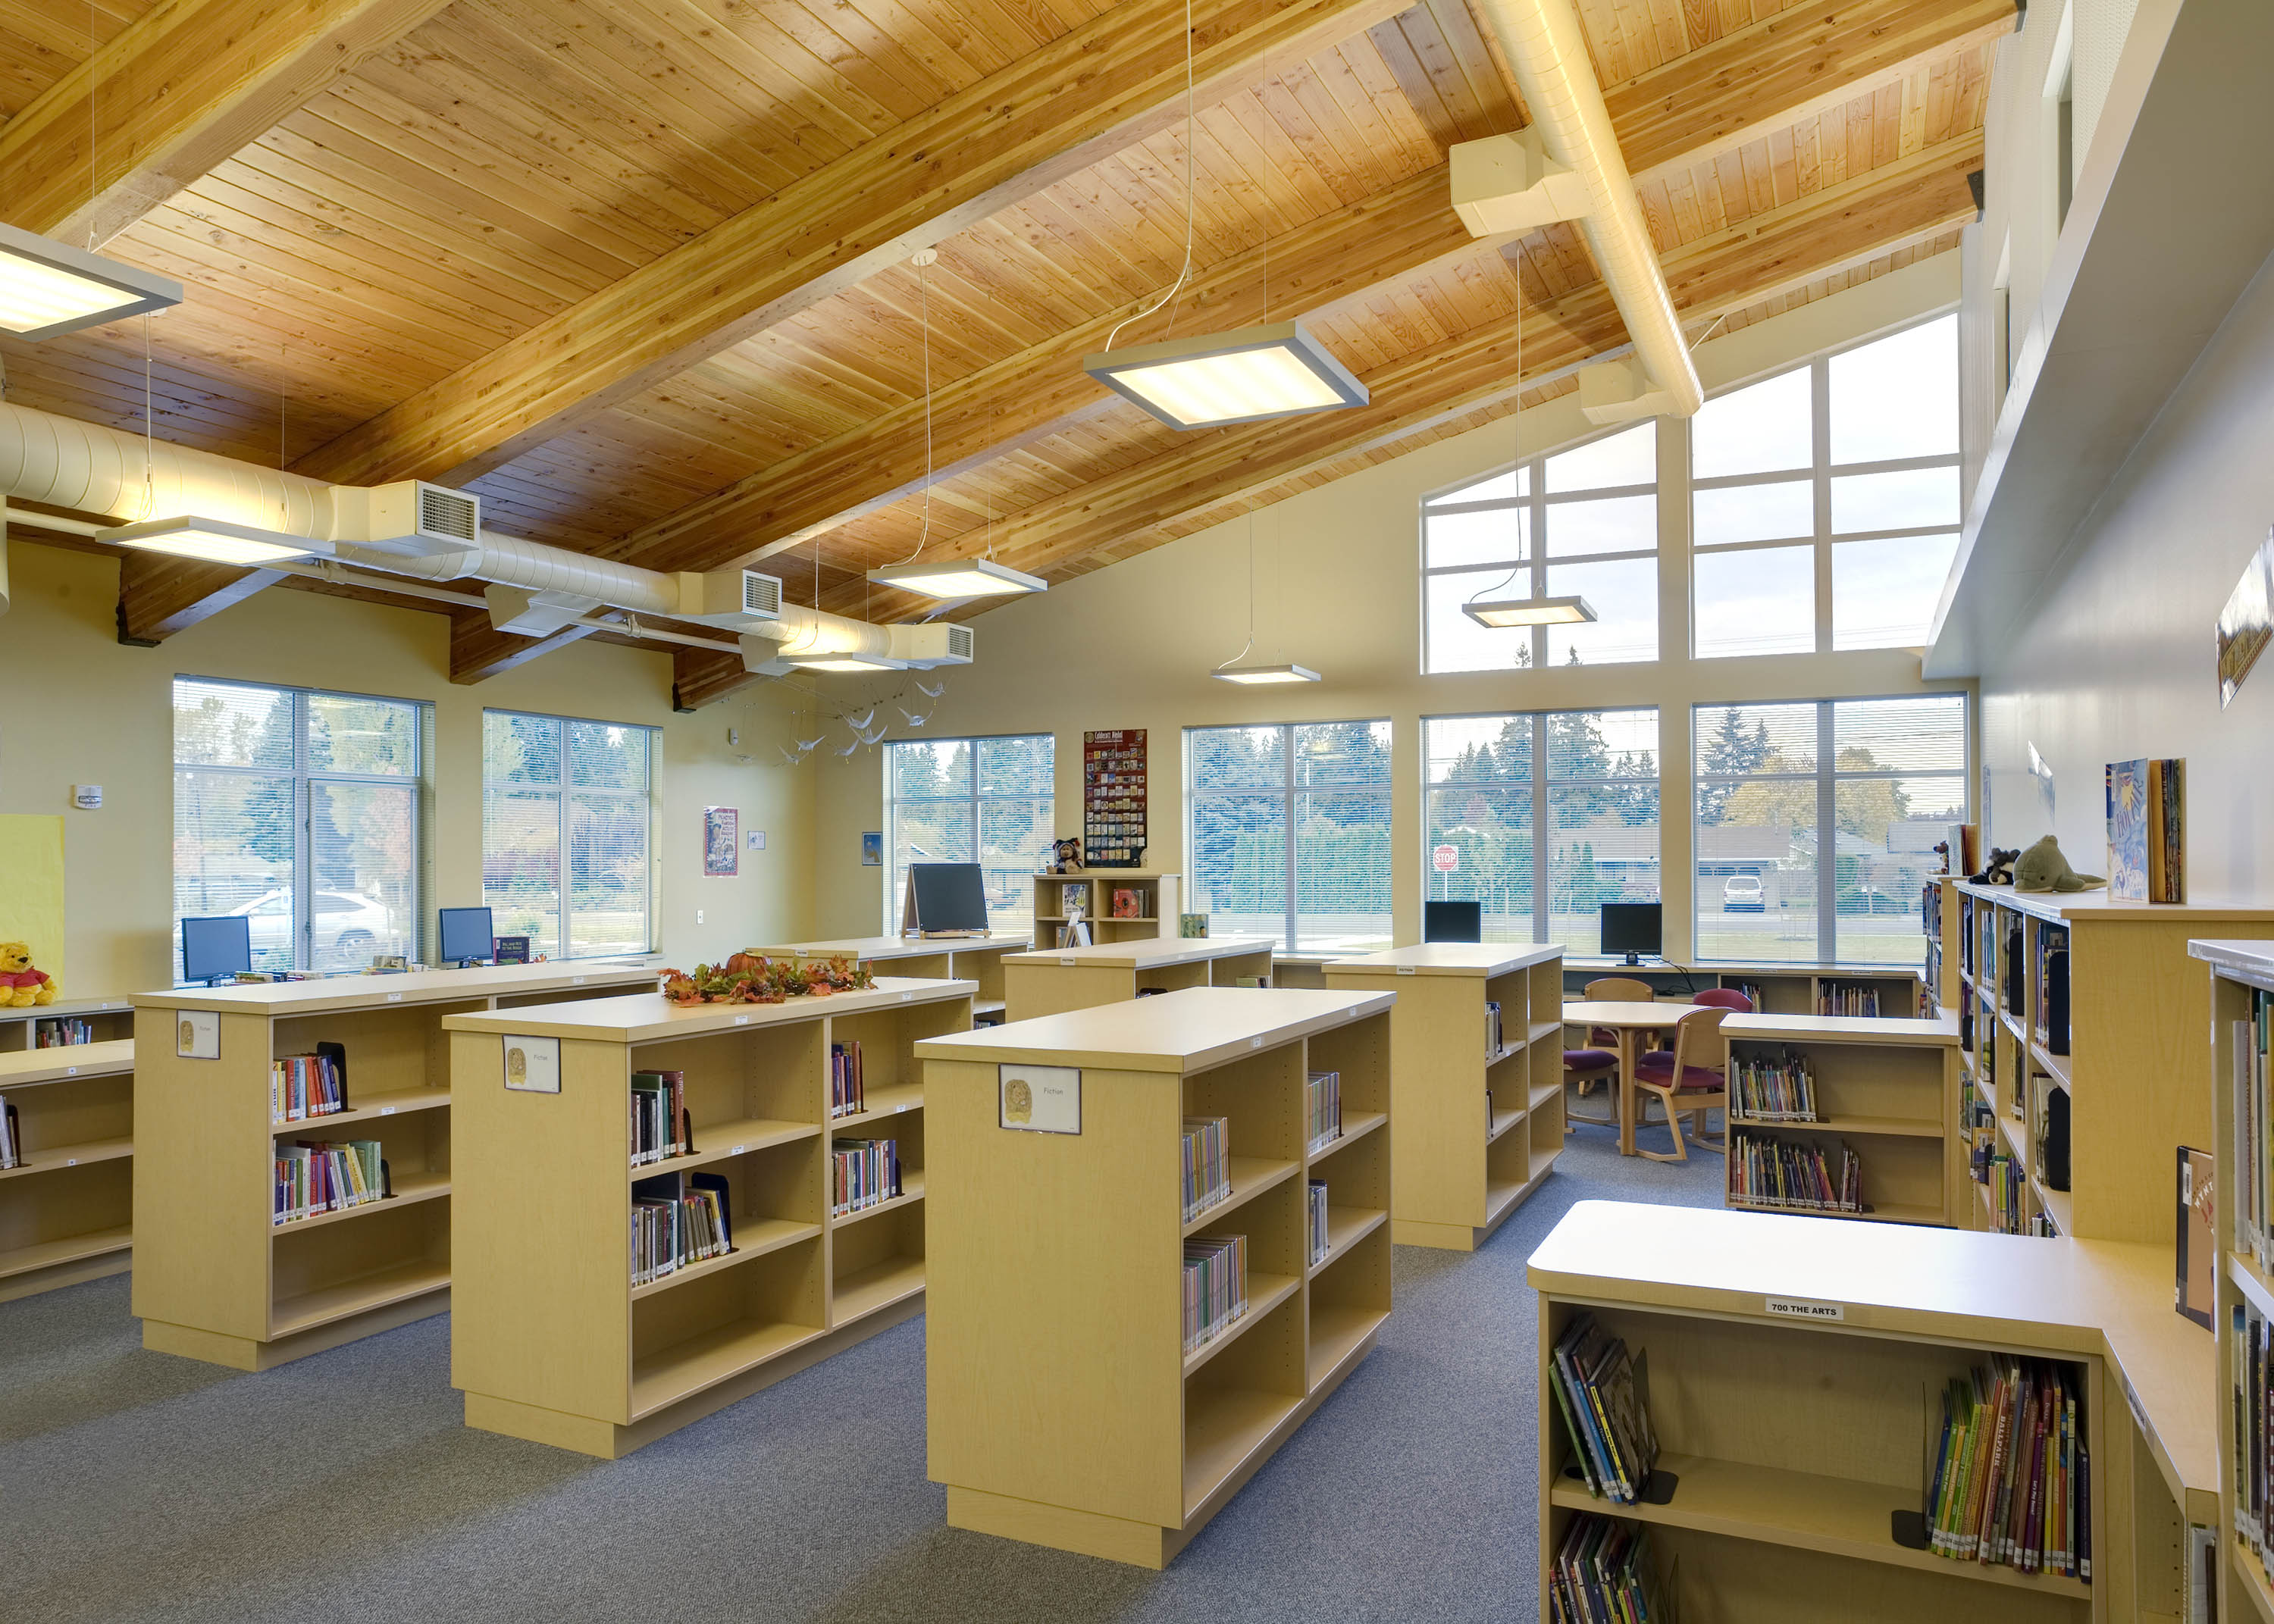 Wide photo of the library with wood ceilings and window light coming in.